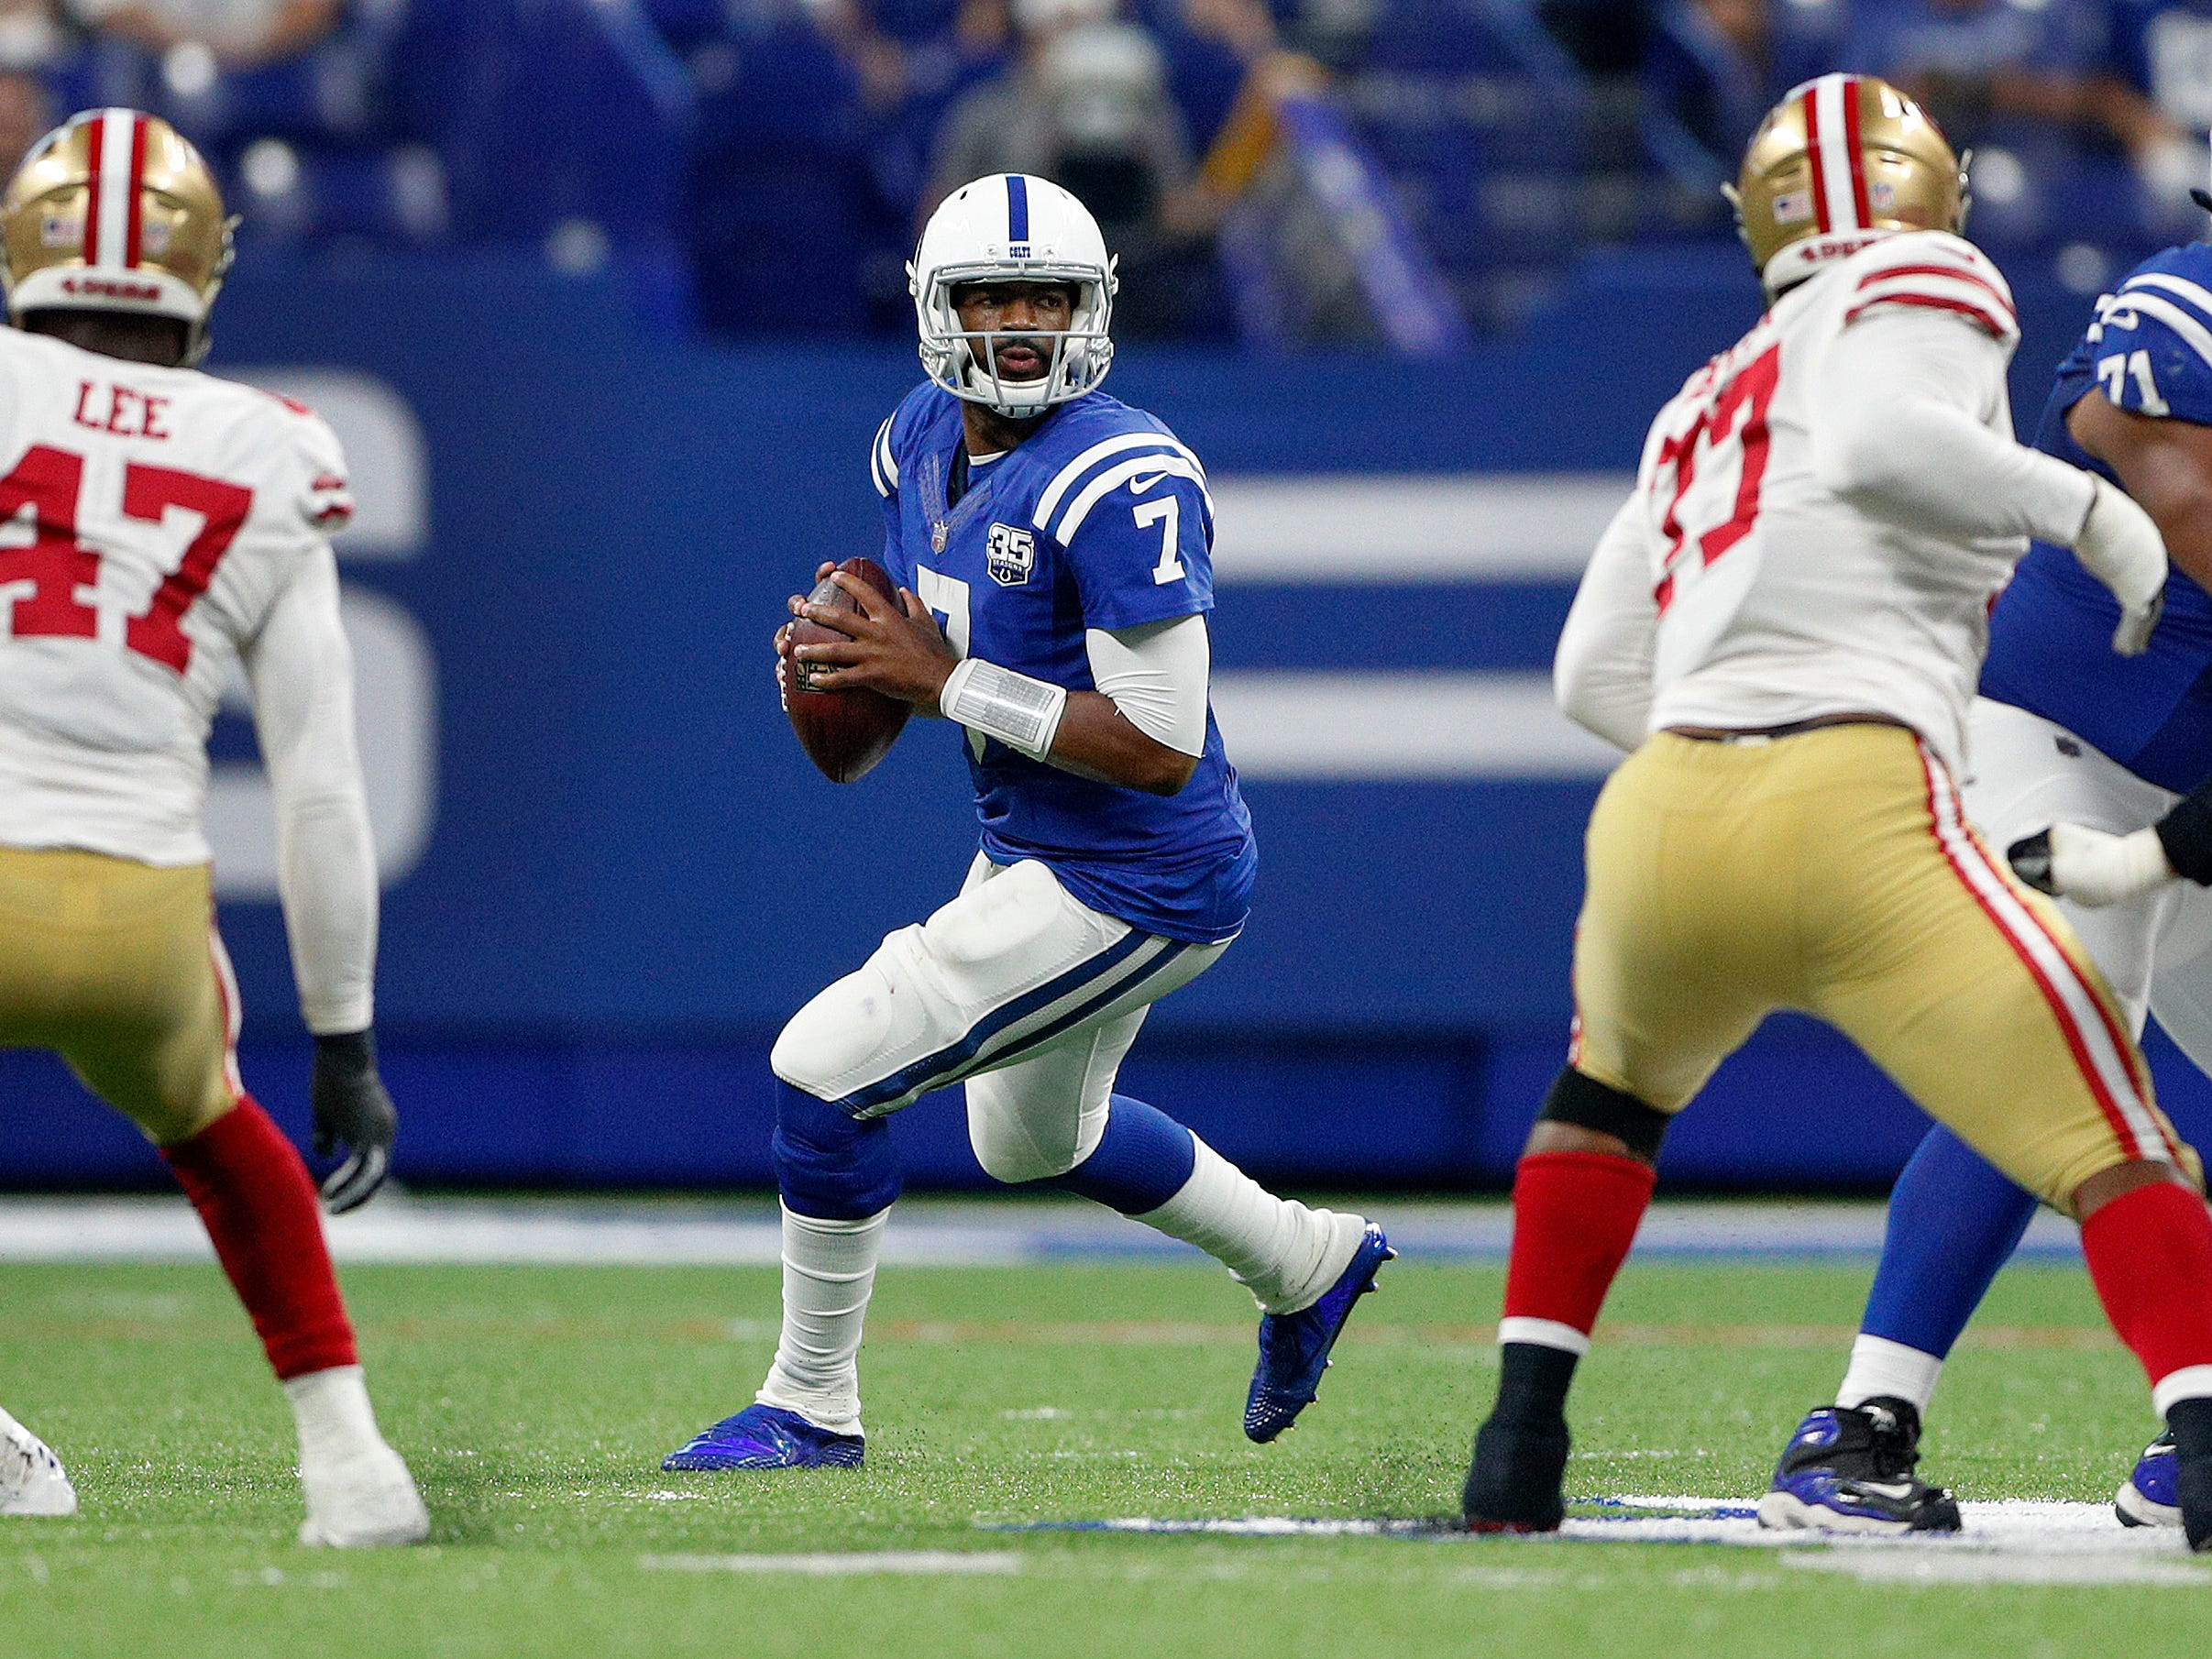 Indianapolis Colts quarterback Jacoby Brissett (7) drops back to pass on the San Francisco 49ers defense in the second half of their preseason football game at Lucas Oil Stadium Saturday, August 25, 2018. The Colts defeated the 49ers 23-17.